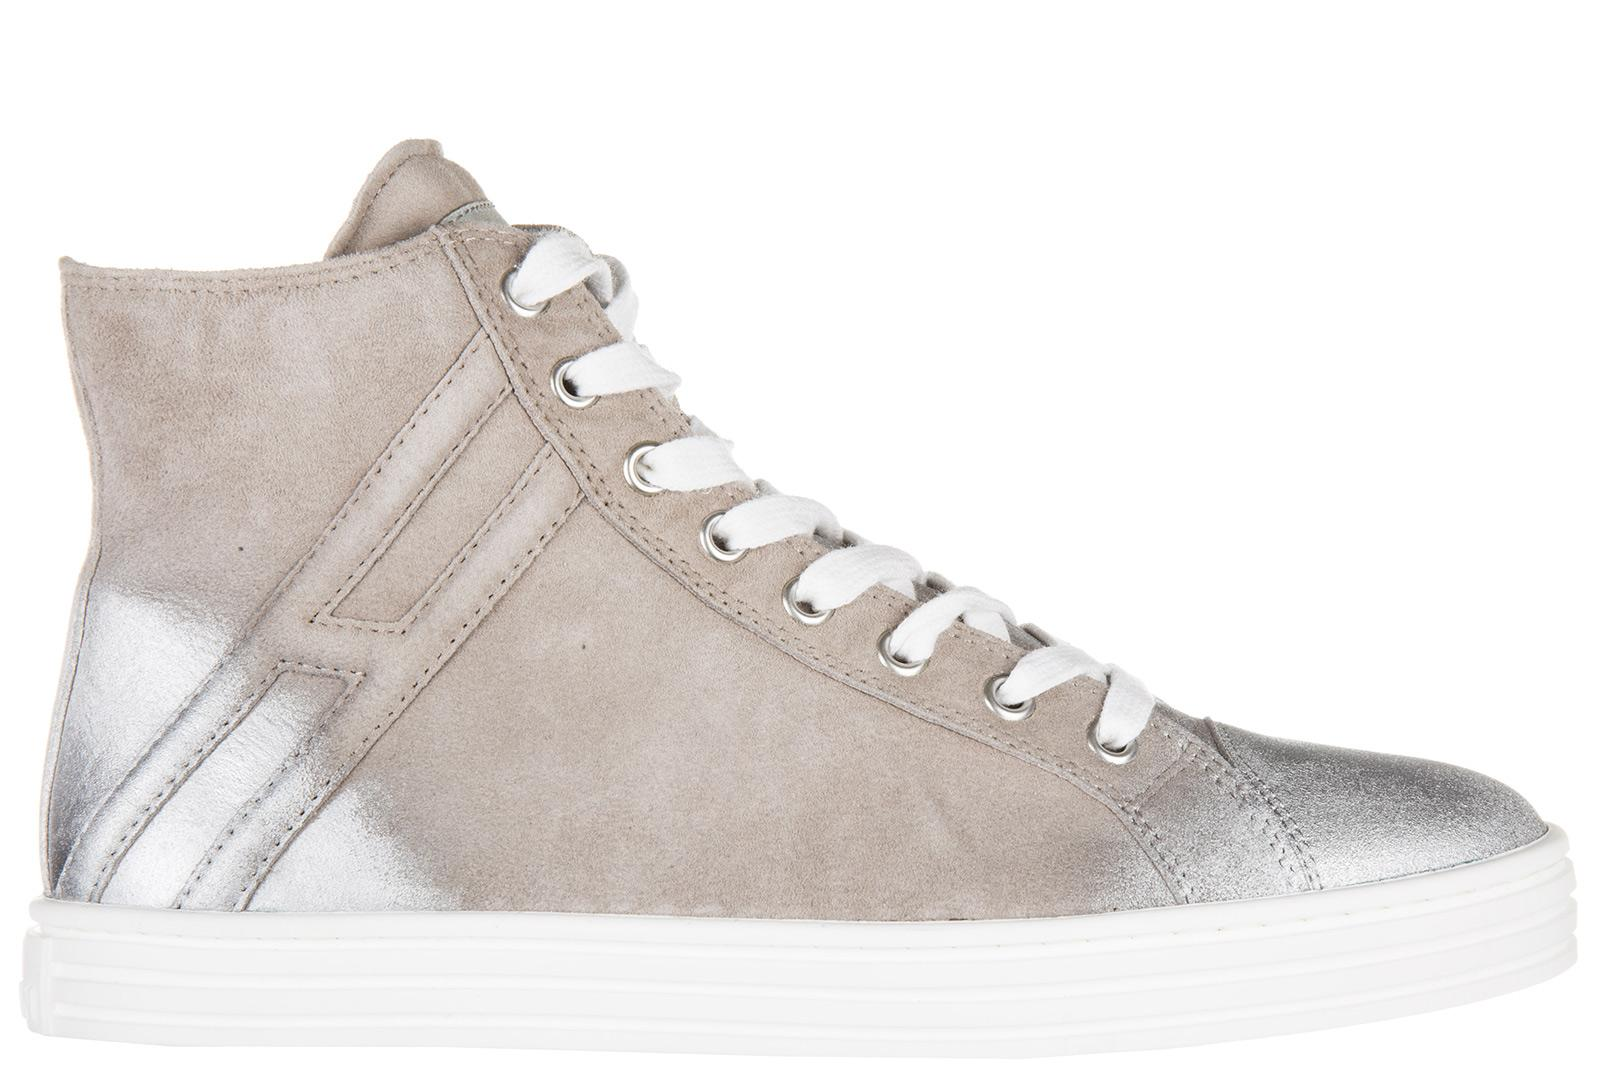 Hogan Rebel Women's Shoes High Top Suede Trainers Sneakers R141 ...